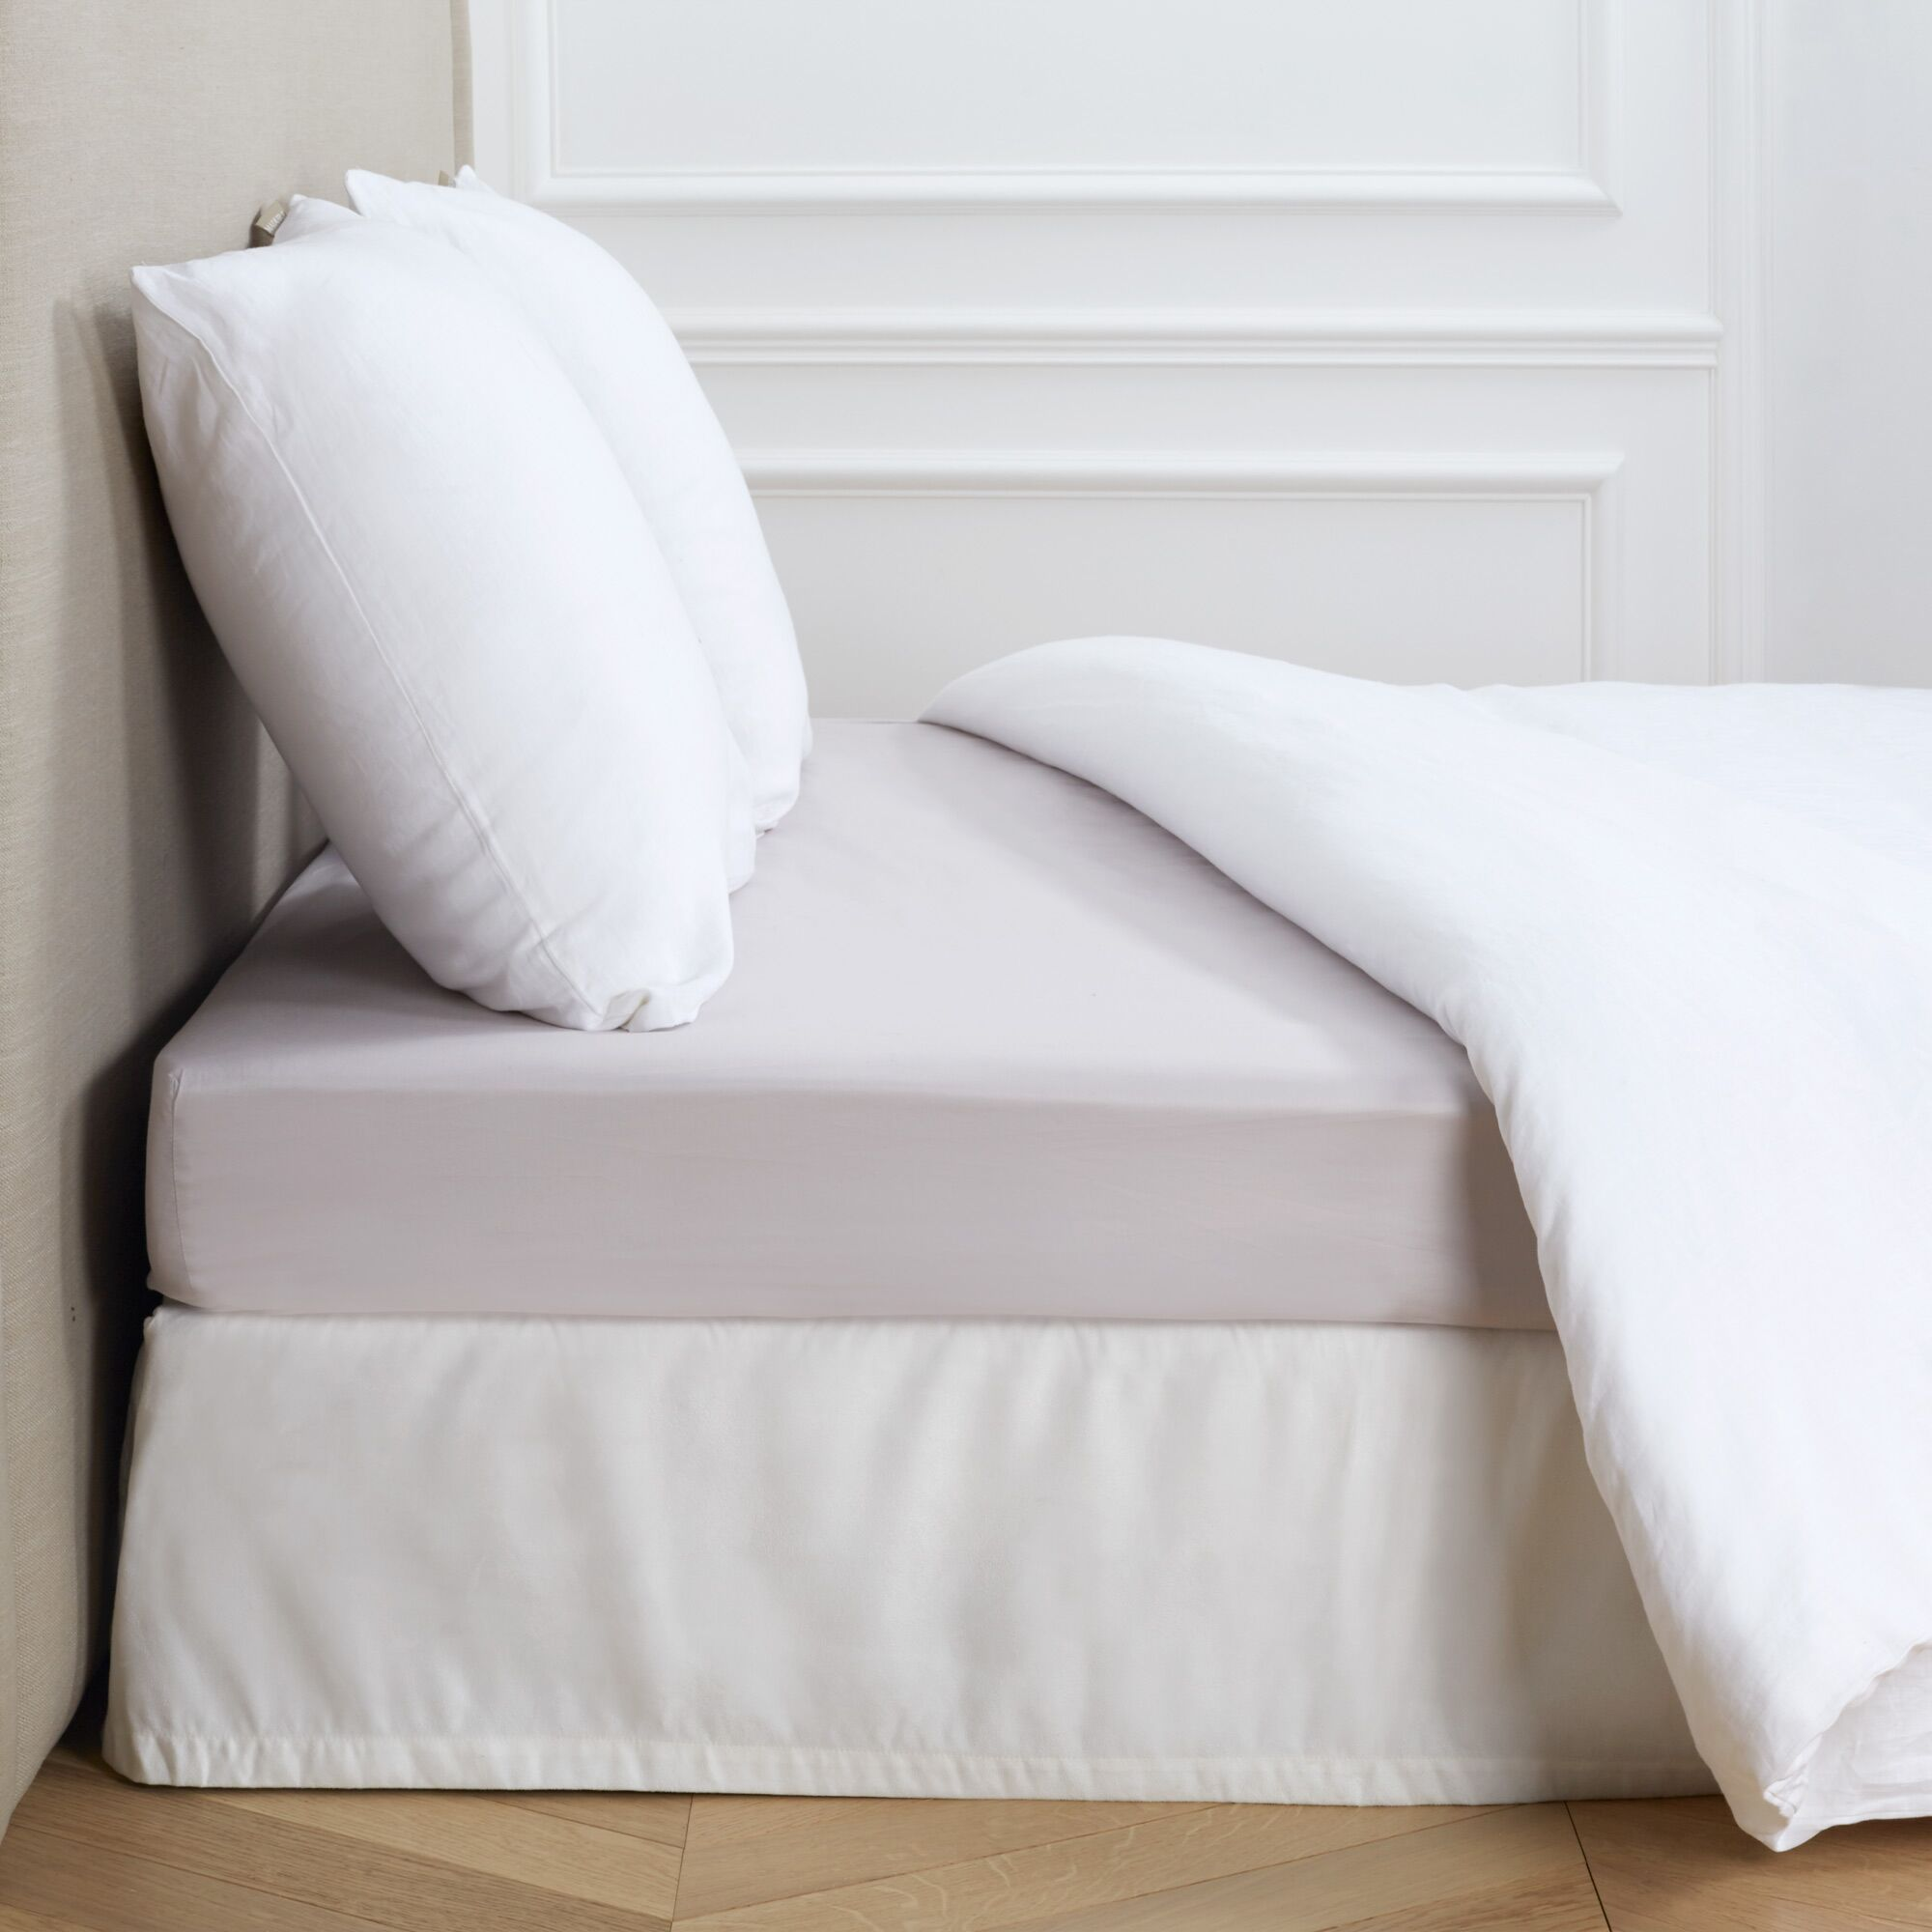 Aurore 300 Thread Count Fitted Sheet Color: Light Beige, Size: Queen